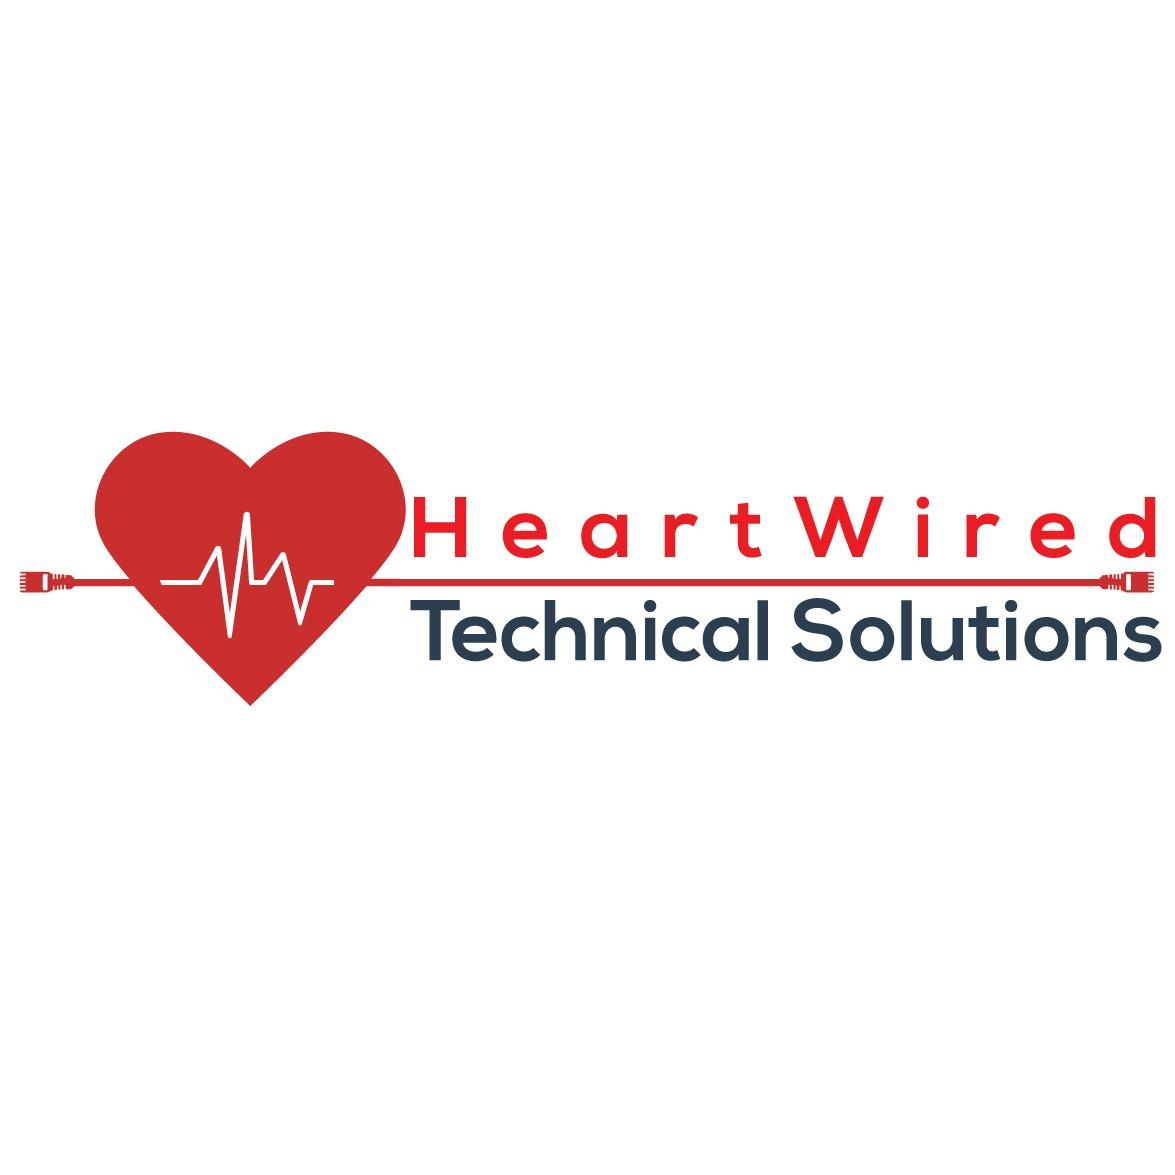 HeartWired Technical Solutions